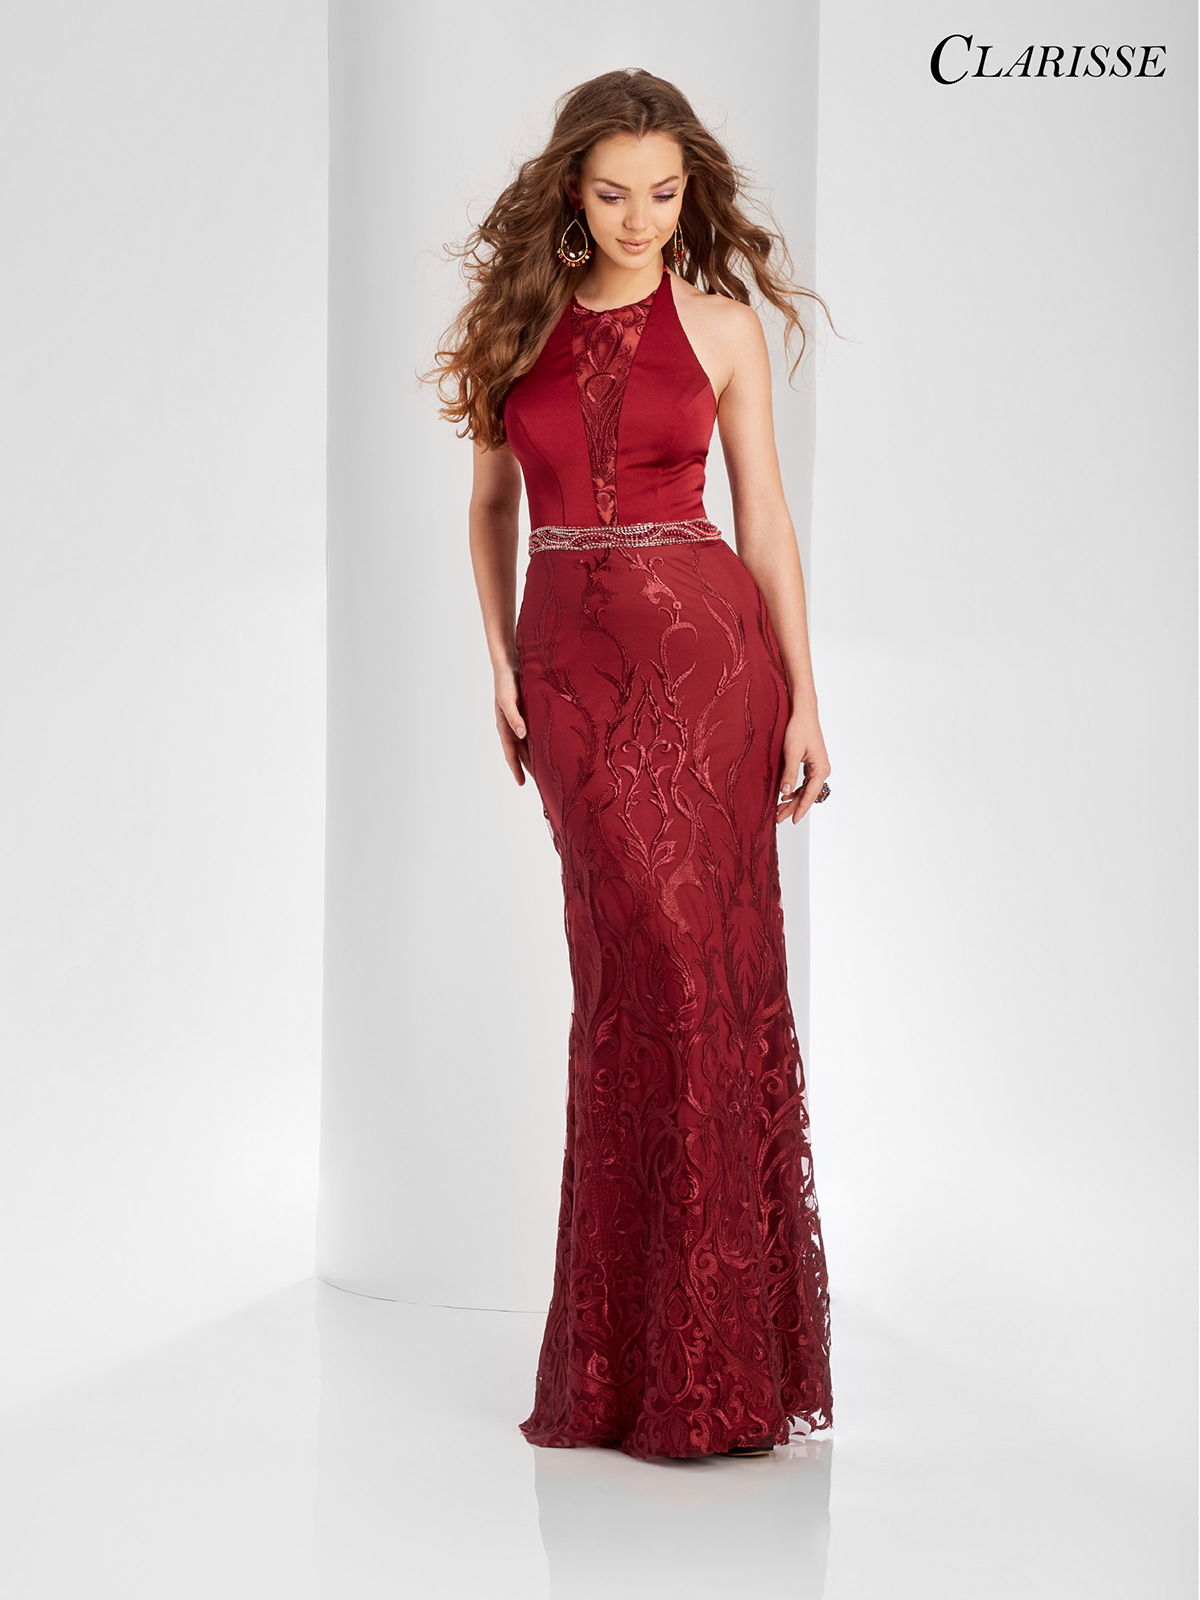 2018 Prom Dress Clarisse 3557 | Promgirl.net